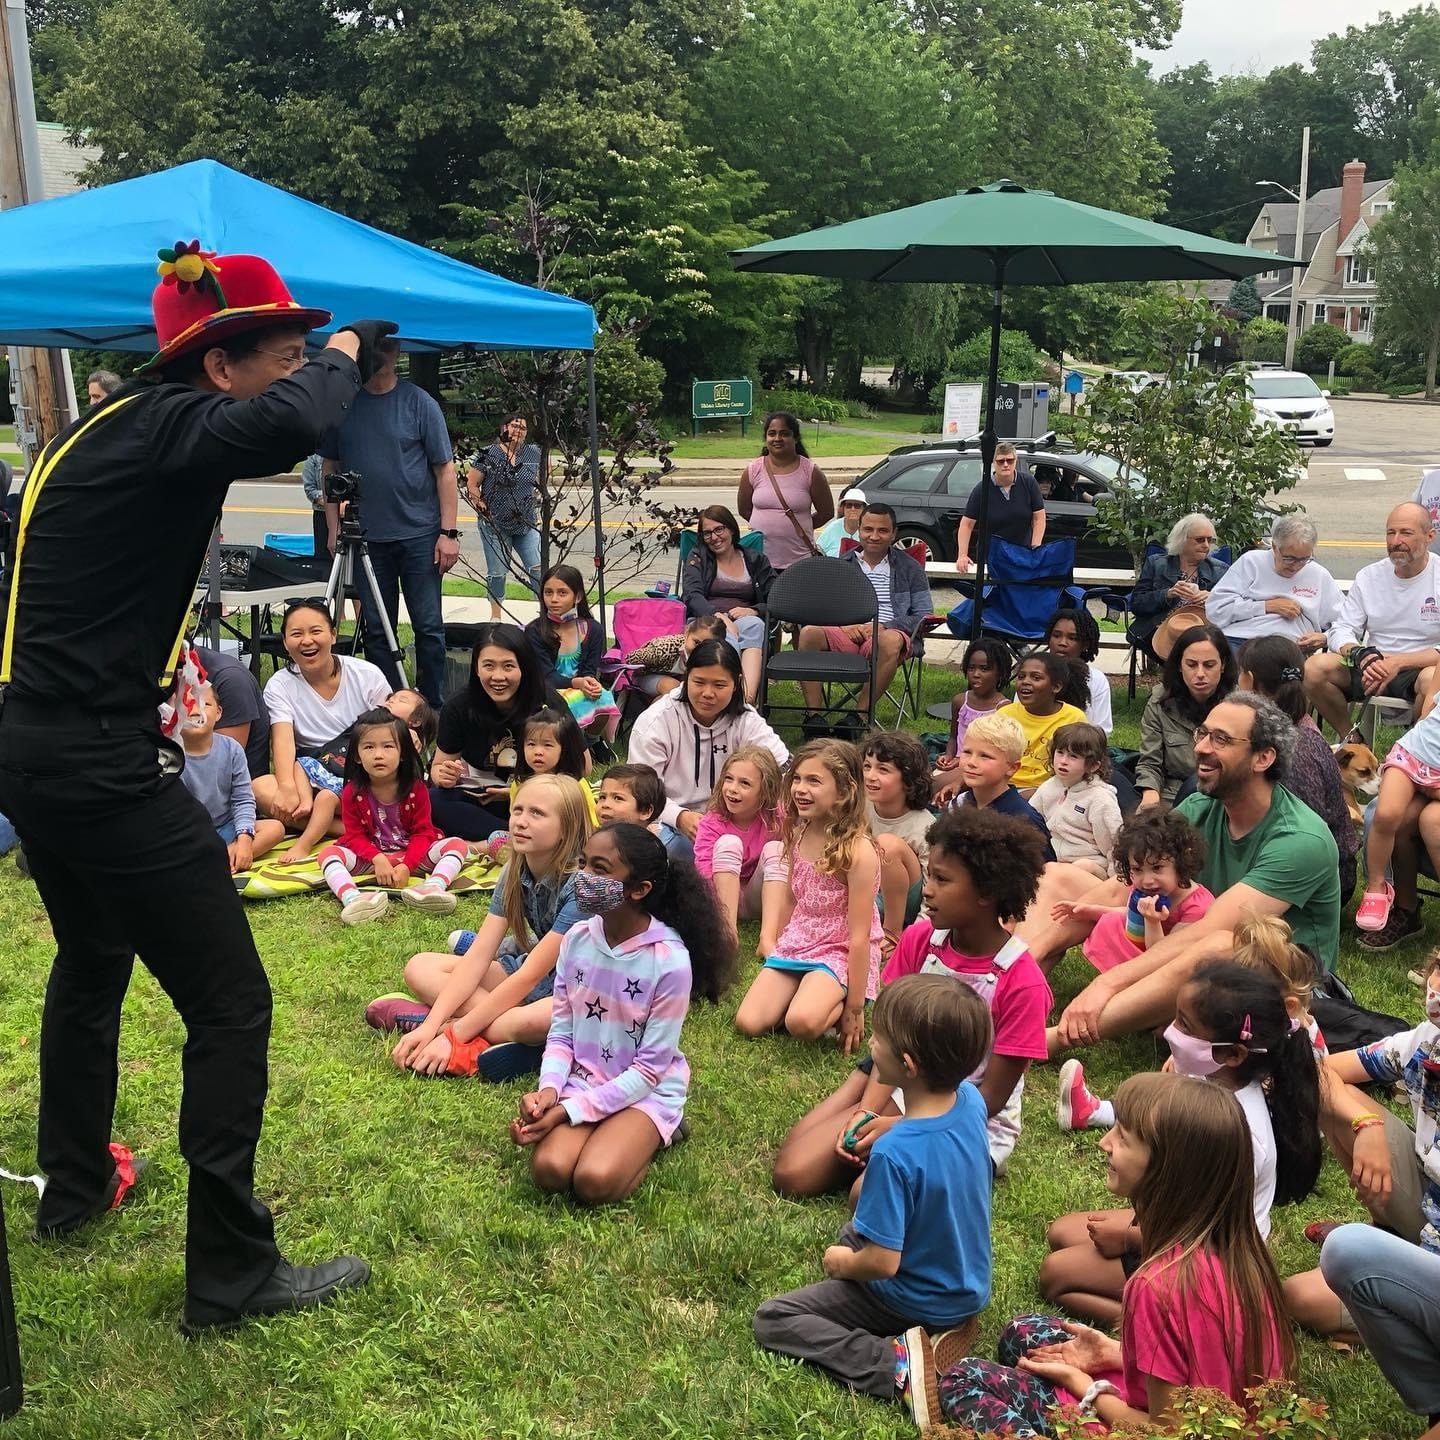 Magician with kids